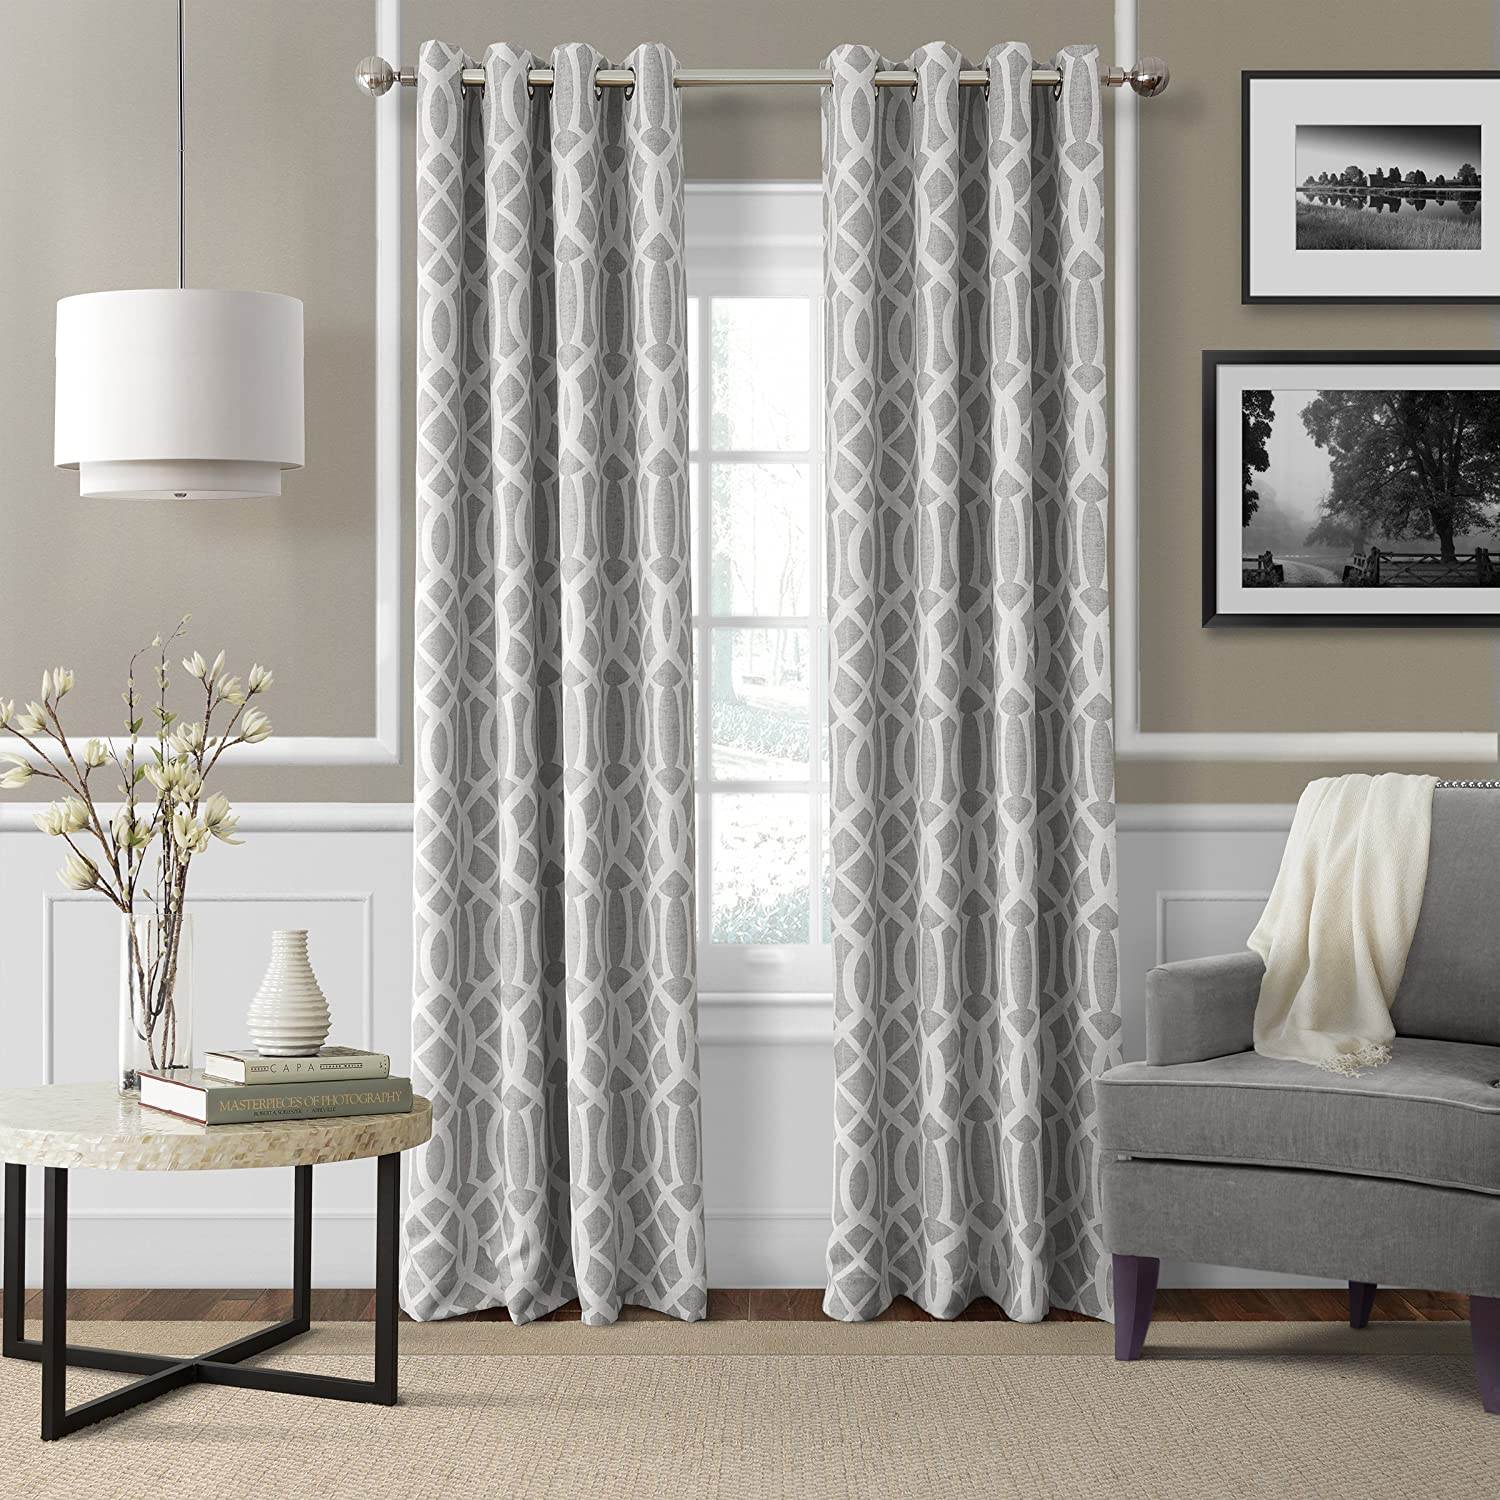 "Elrene Home Fashions Energy Efficient Room Darkening-Rod Pocket Window Panel Harper Gray 52"" x 95"" (1 Panel) 1"